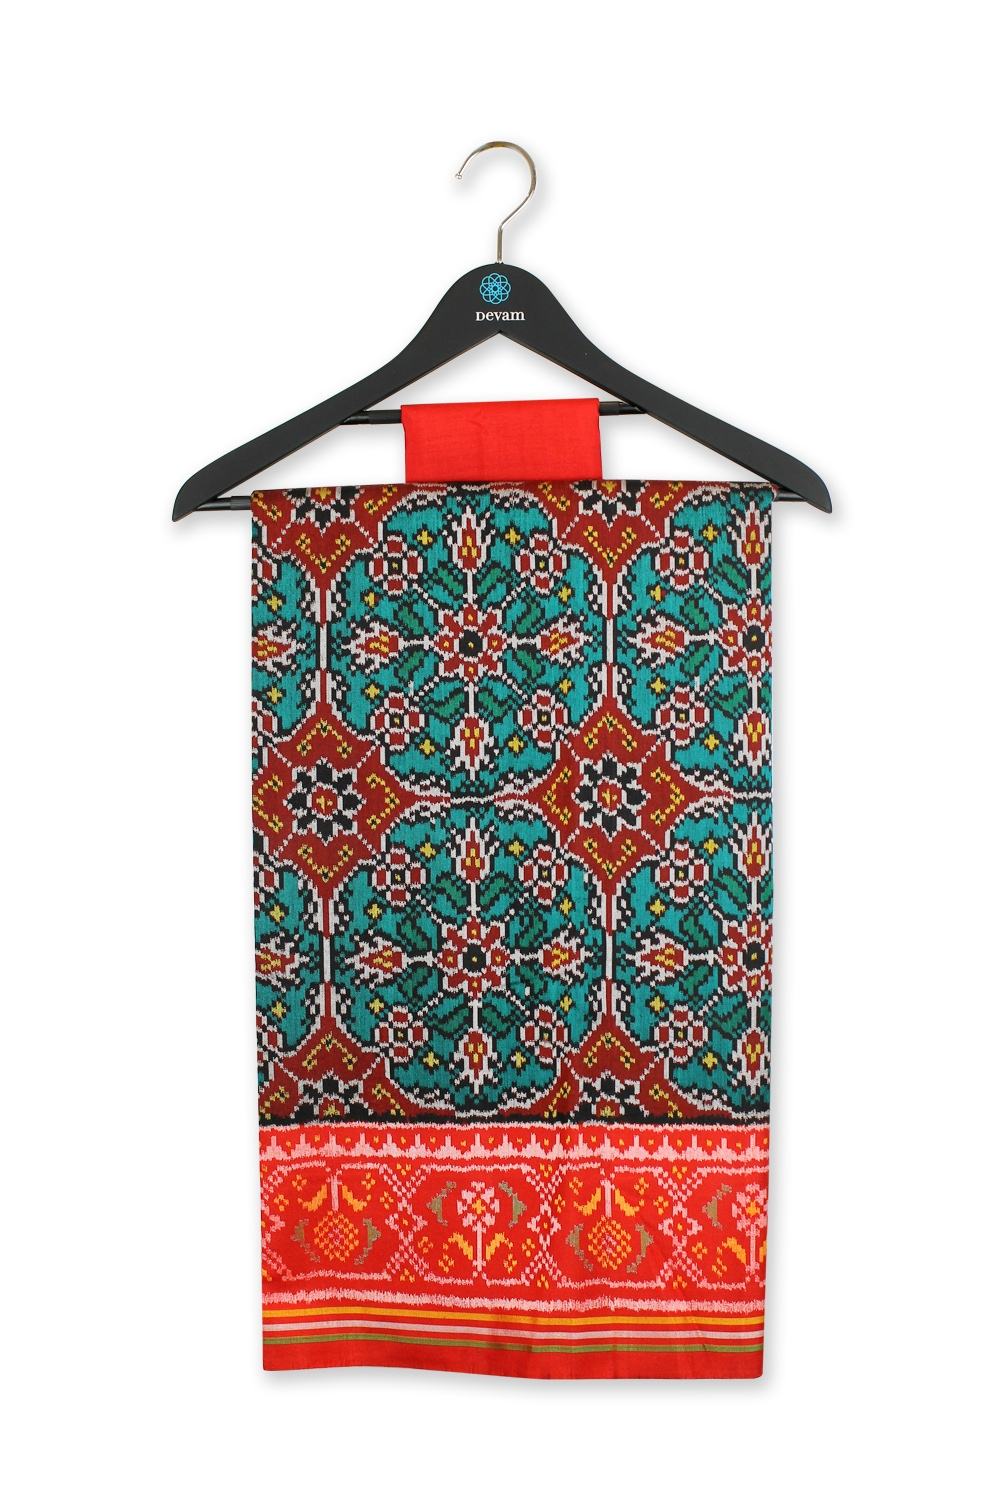 Teal & Fiery Red Single Ikkat Silk Patola Saree